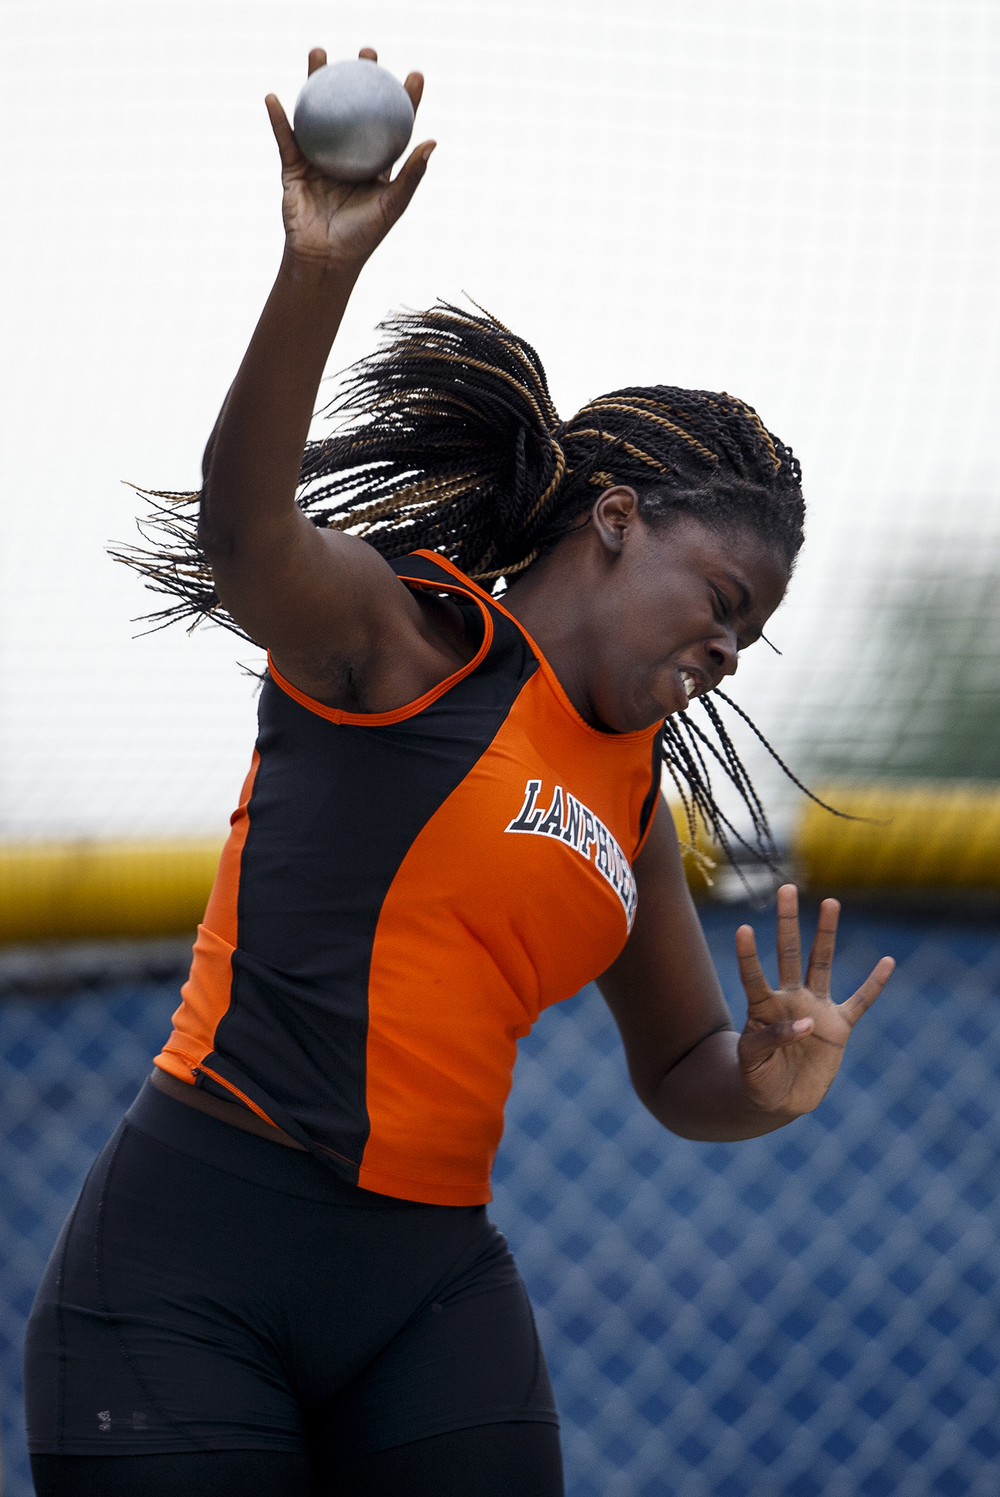 Lanphier's Nia Tiller competes in the shot put during the Class 2A girls sectional track meet at Rochester High School Friday, May 13, 2016. Ted Schurter/The State Journal-Register